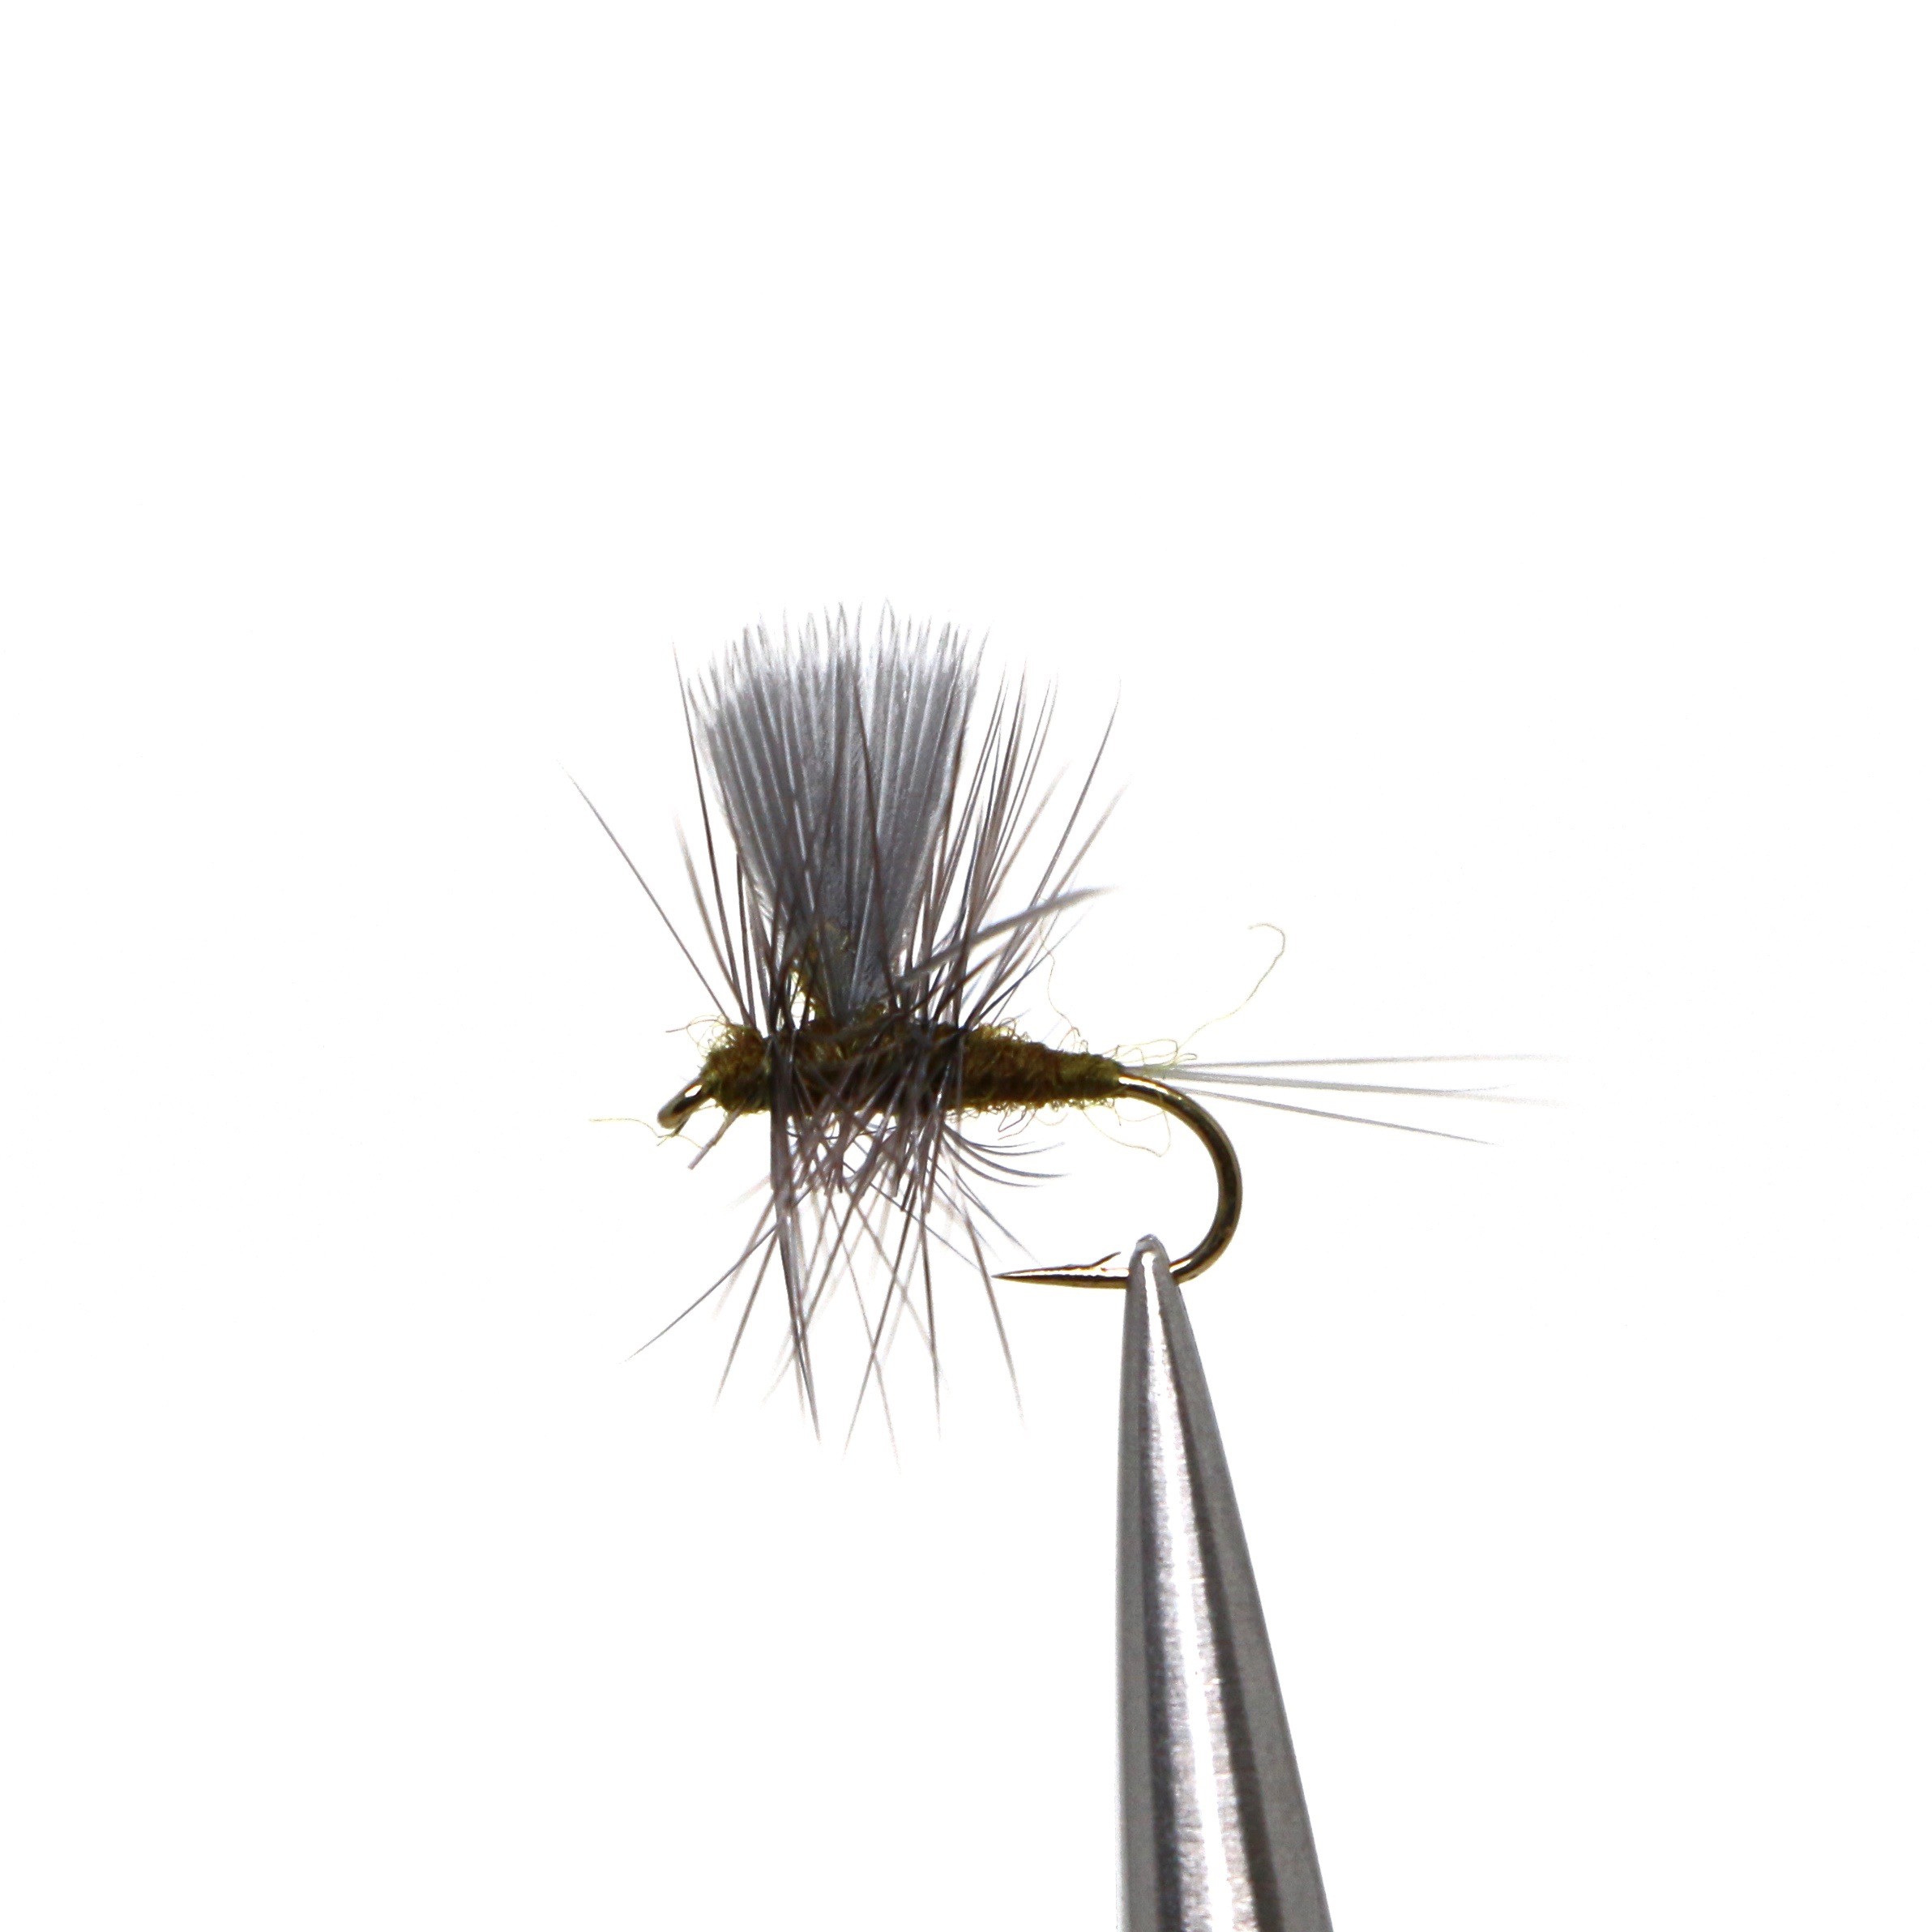 BWO Thorax:  https://ironbowflyshop.ca/collections/flies/products/bwo-thorax